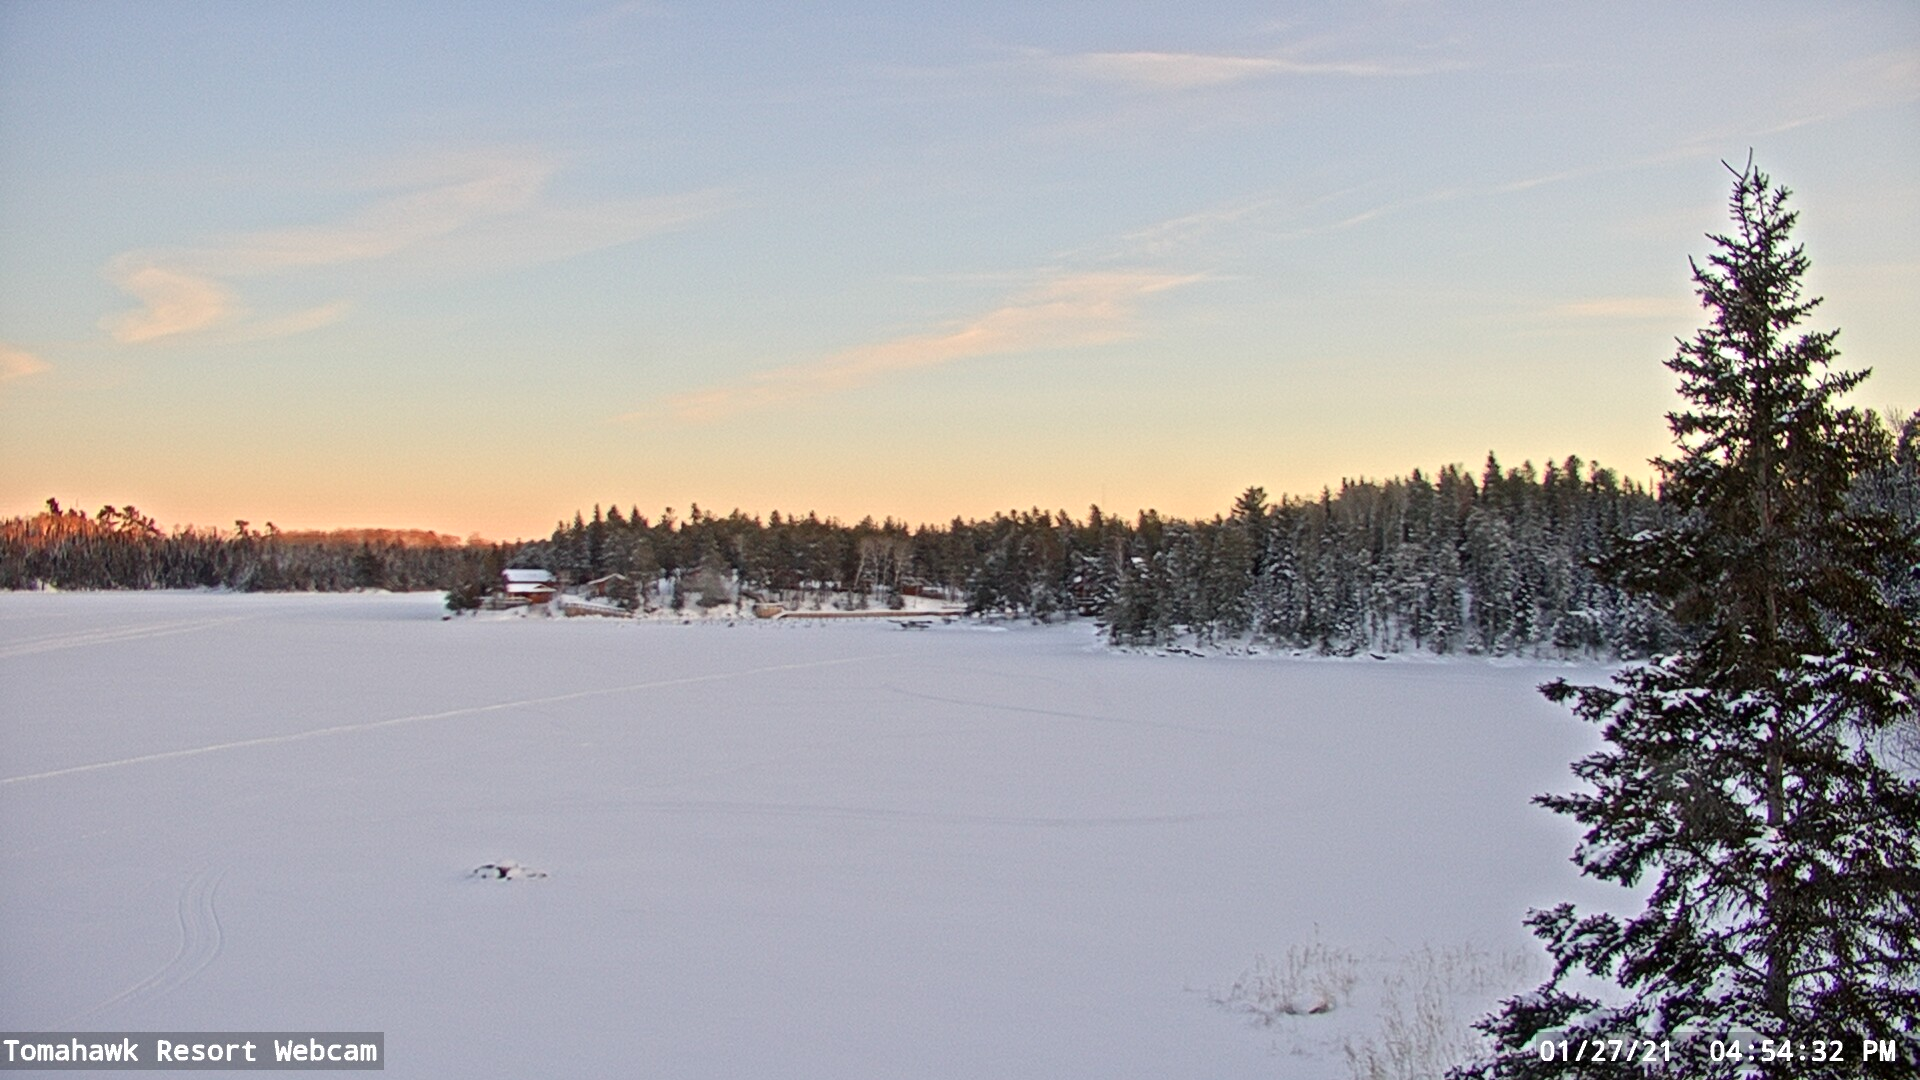 WebCam Still, Lake of the Woods, Ontario